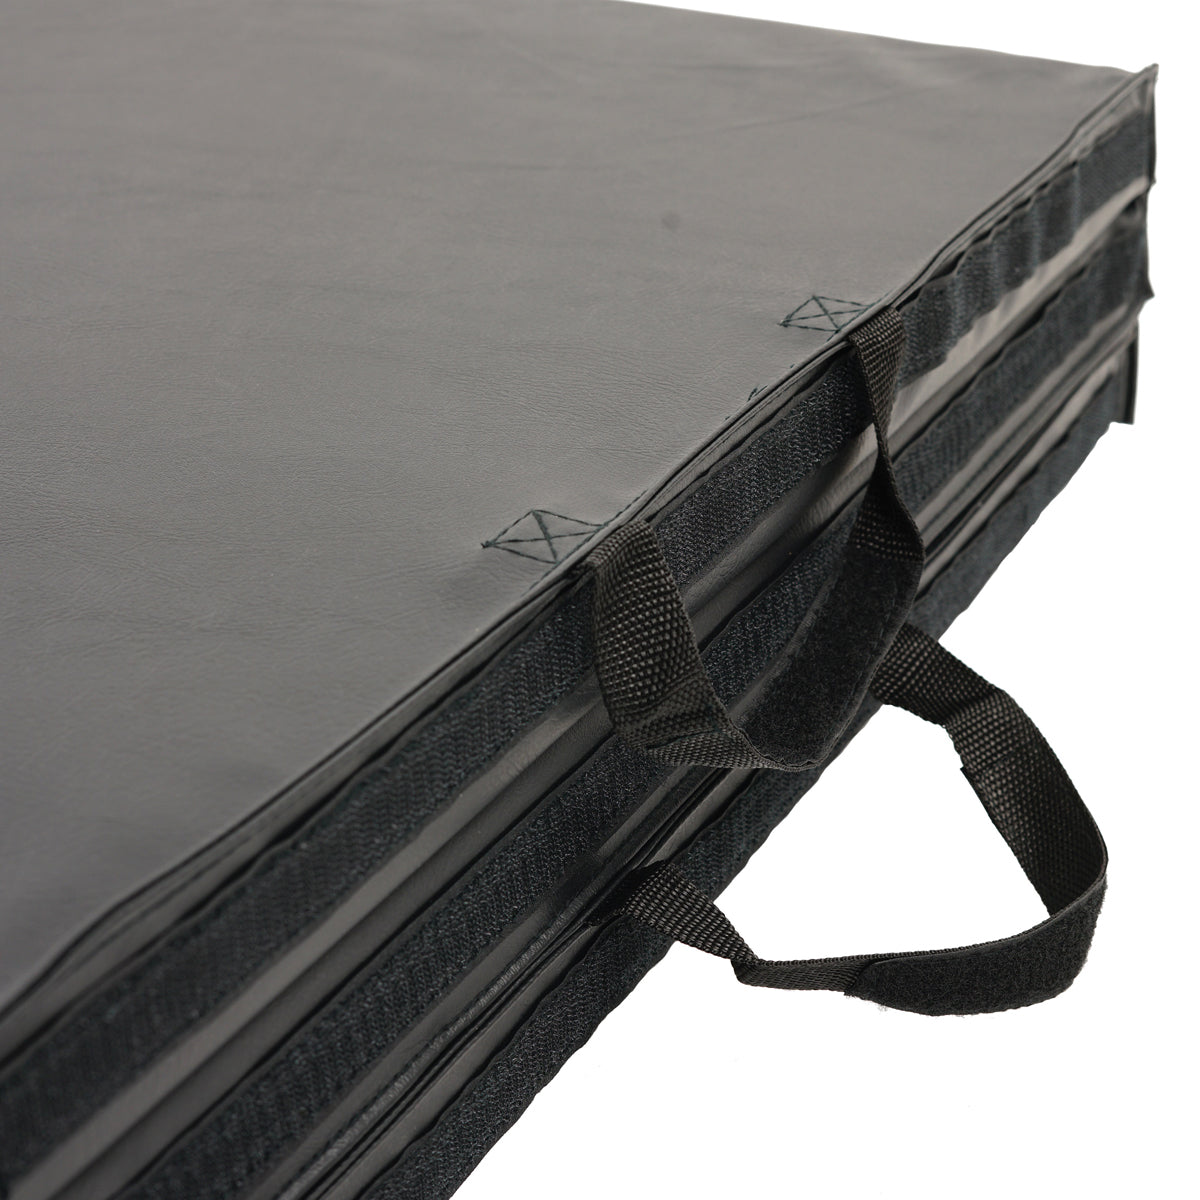 sunny-health-fitness-accessories-folding-gym-mat-No.064-handles